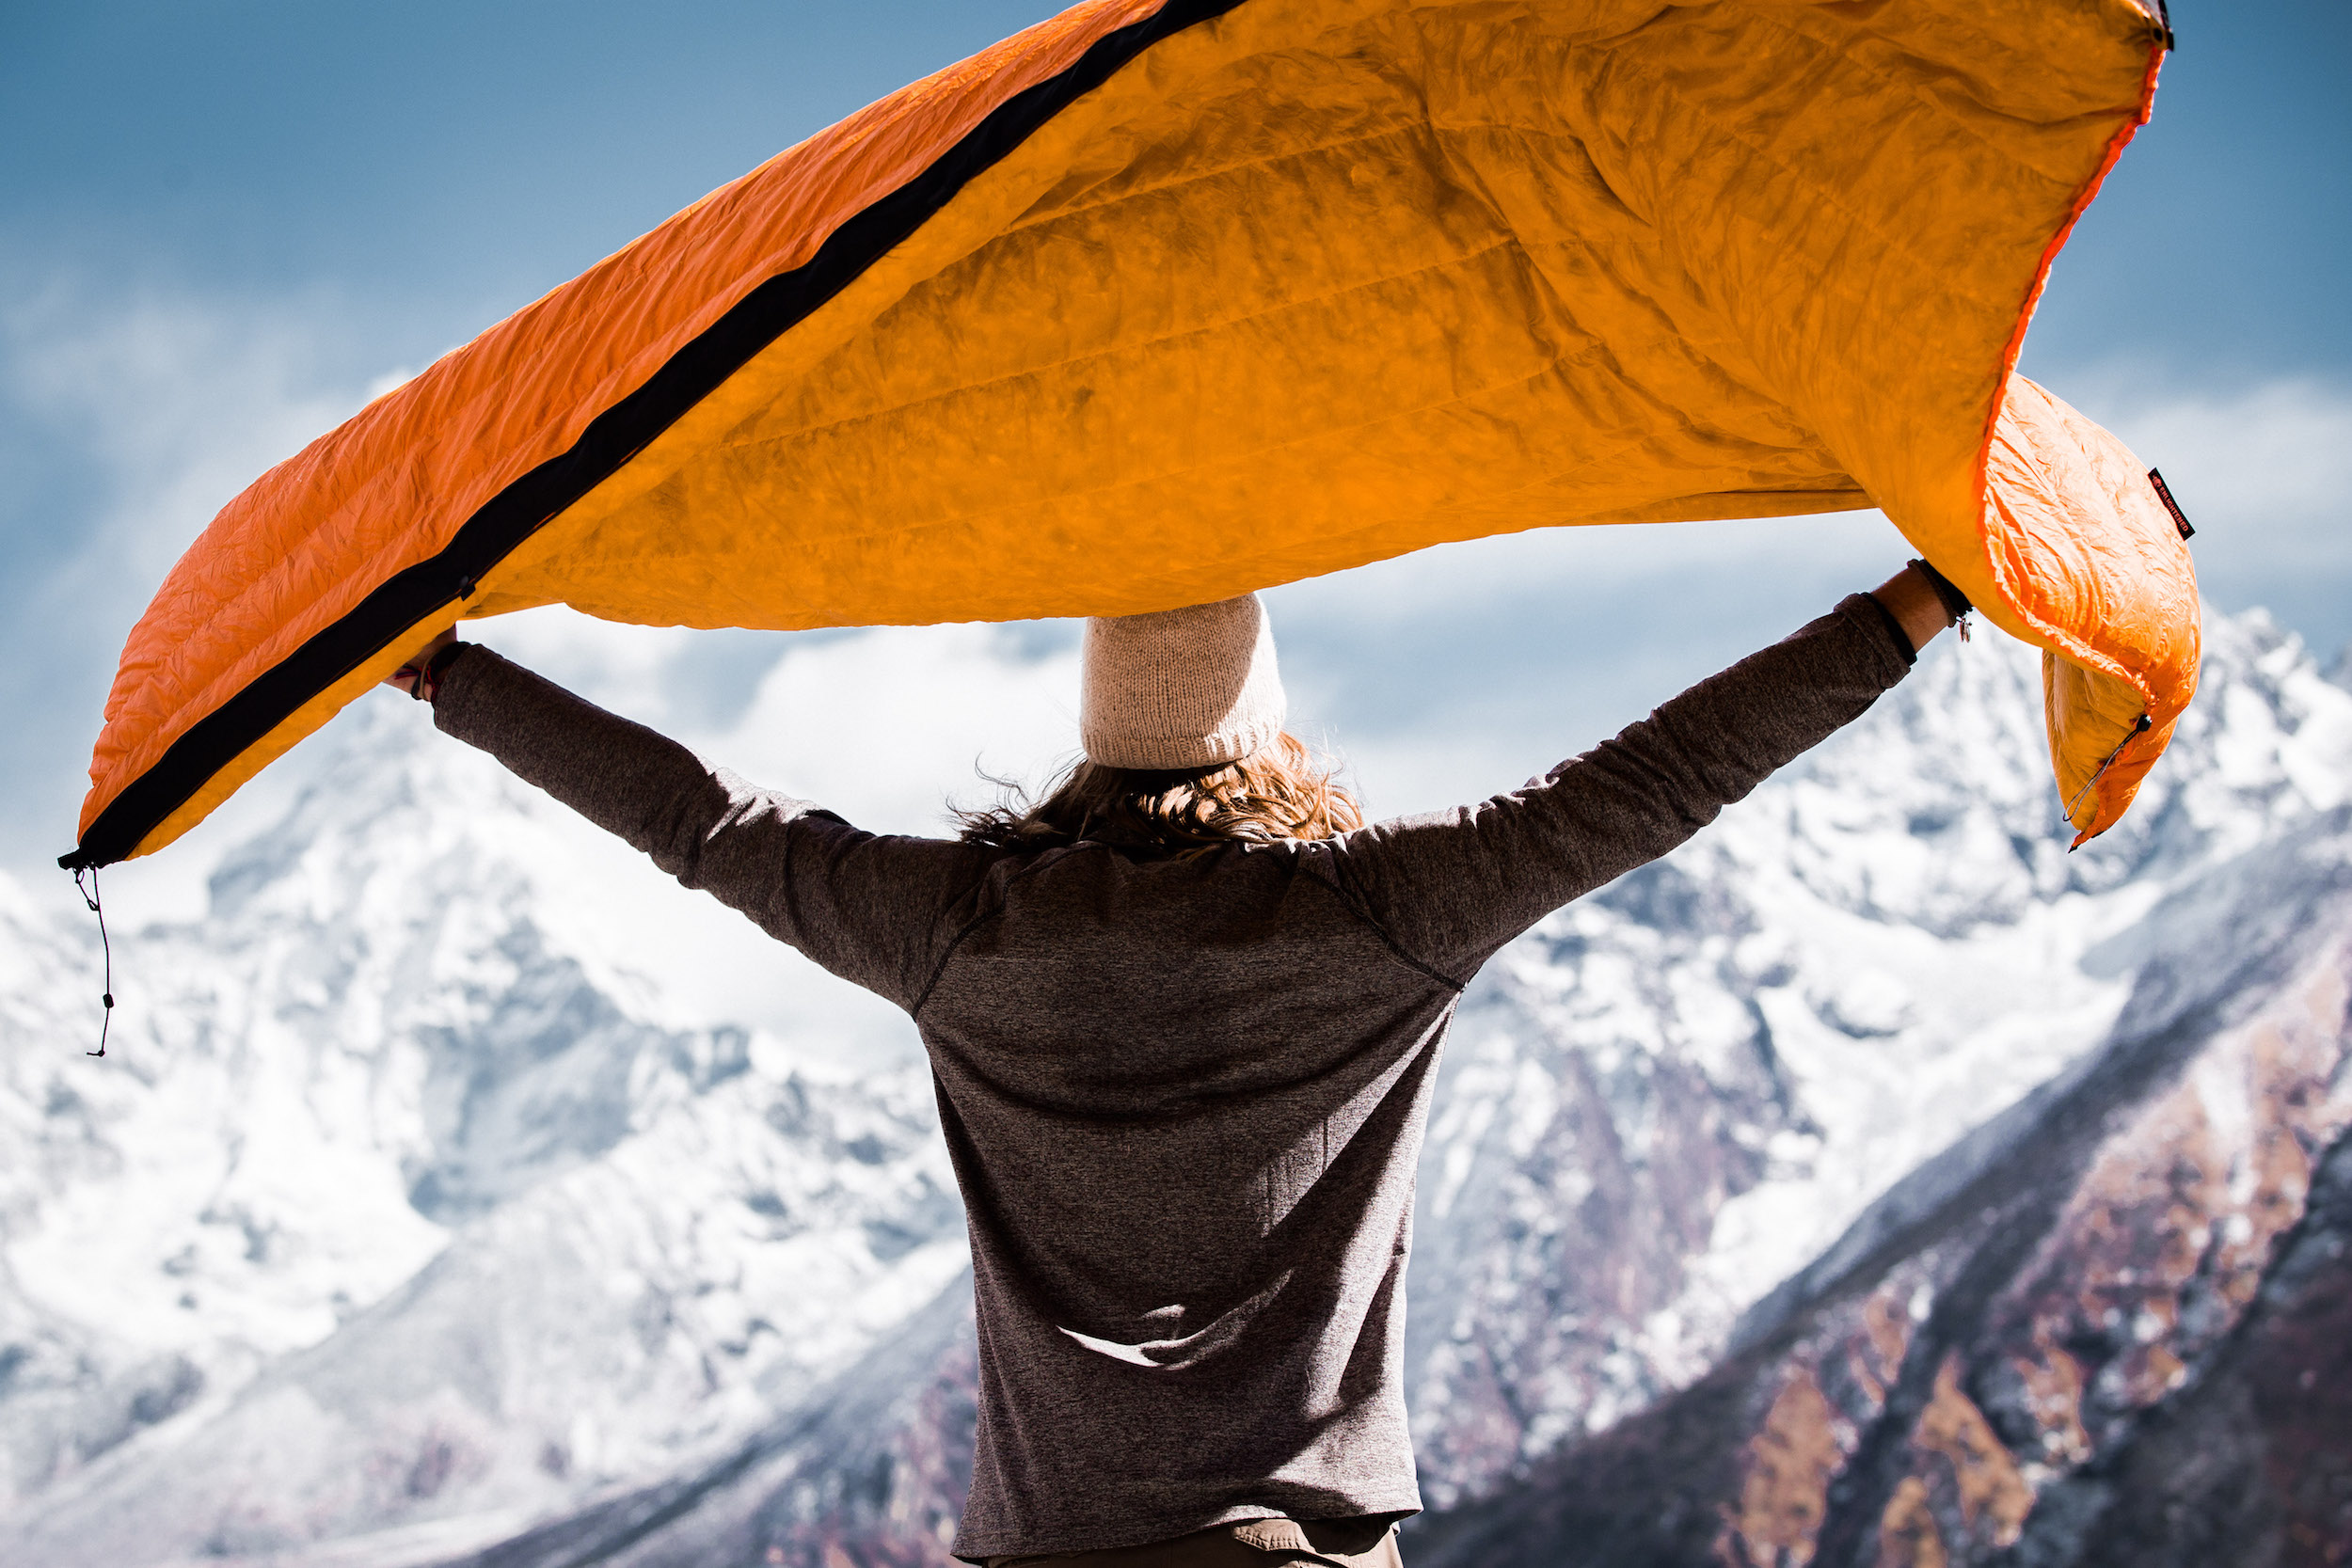 person with arms outstretched holding up Enlightened Equipment quilt in the wind in the mountains